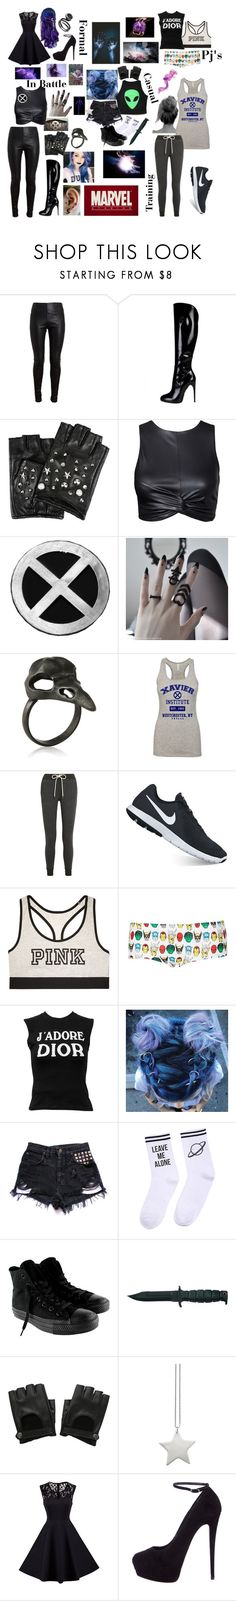 """Me in X-Men"" by xxstar-childxx ❤ liked on Polyvore featuring Balenciaga, Gucci, Karl Lagerfeld, Splendid, NIKE, Victoria's Secret, Topshop, Christian Dior, Yeah Bunny and Converse"